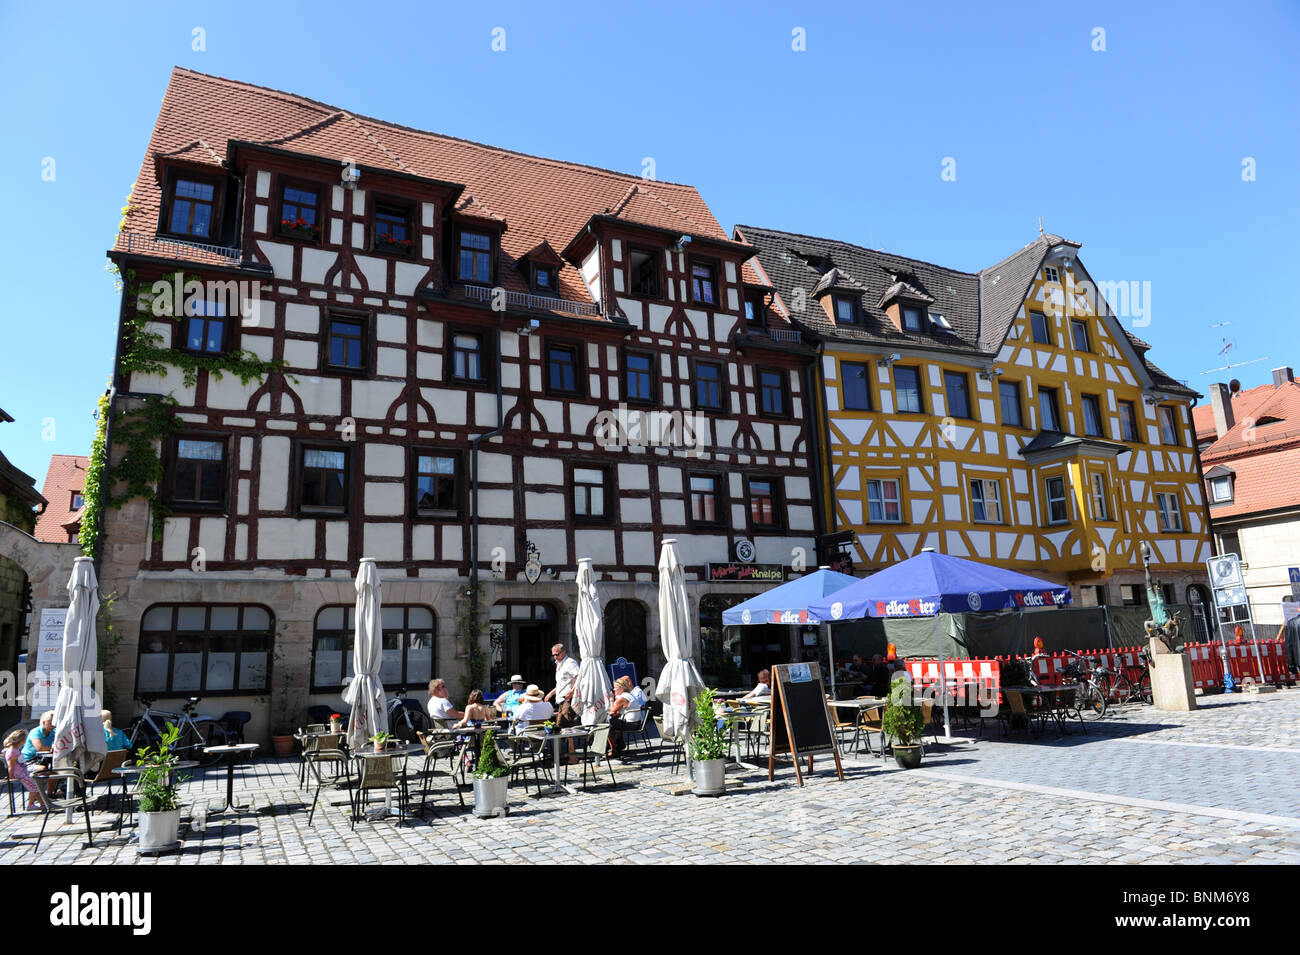 Furth near nuremberg germany nurnberg deutschland europe stock photo royalty free image - Mobelhauser nurnberg furth ...